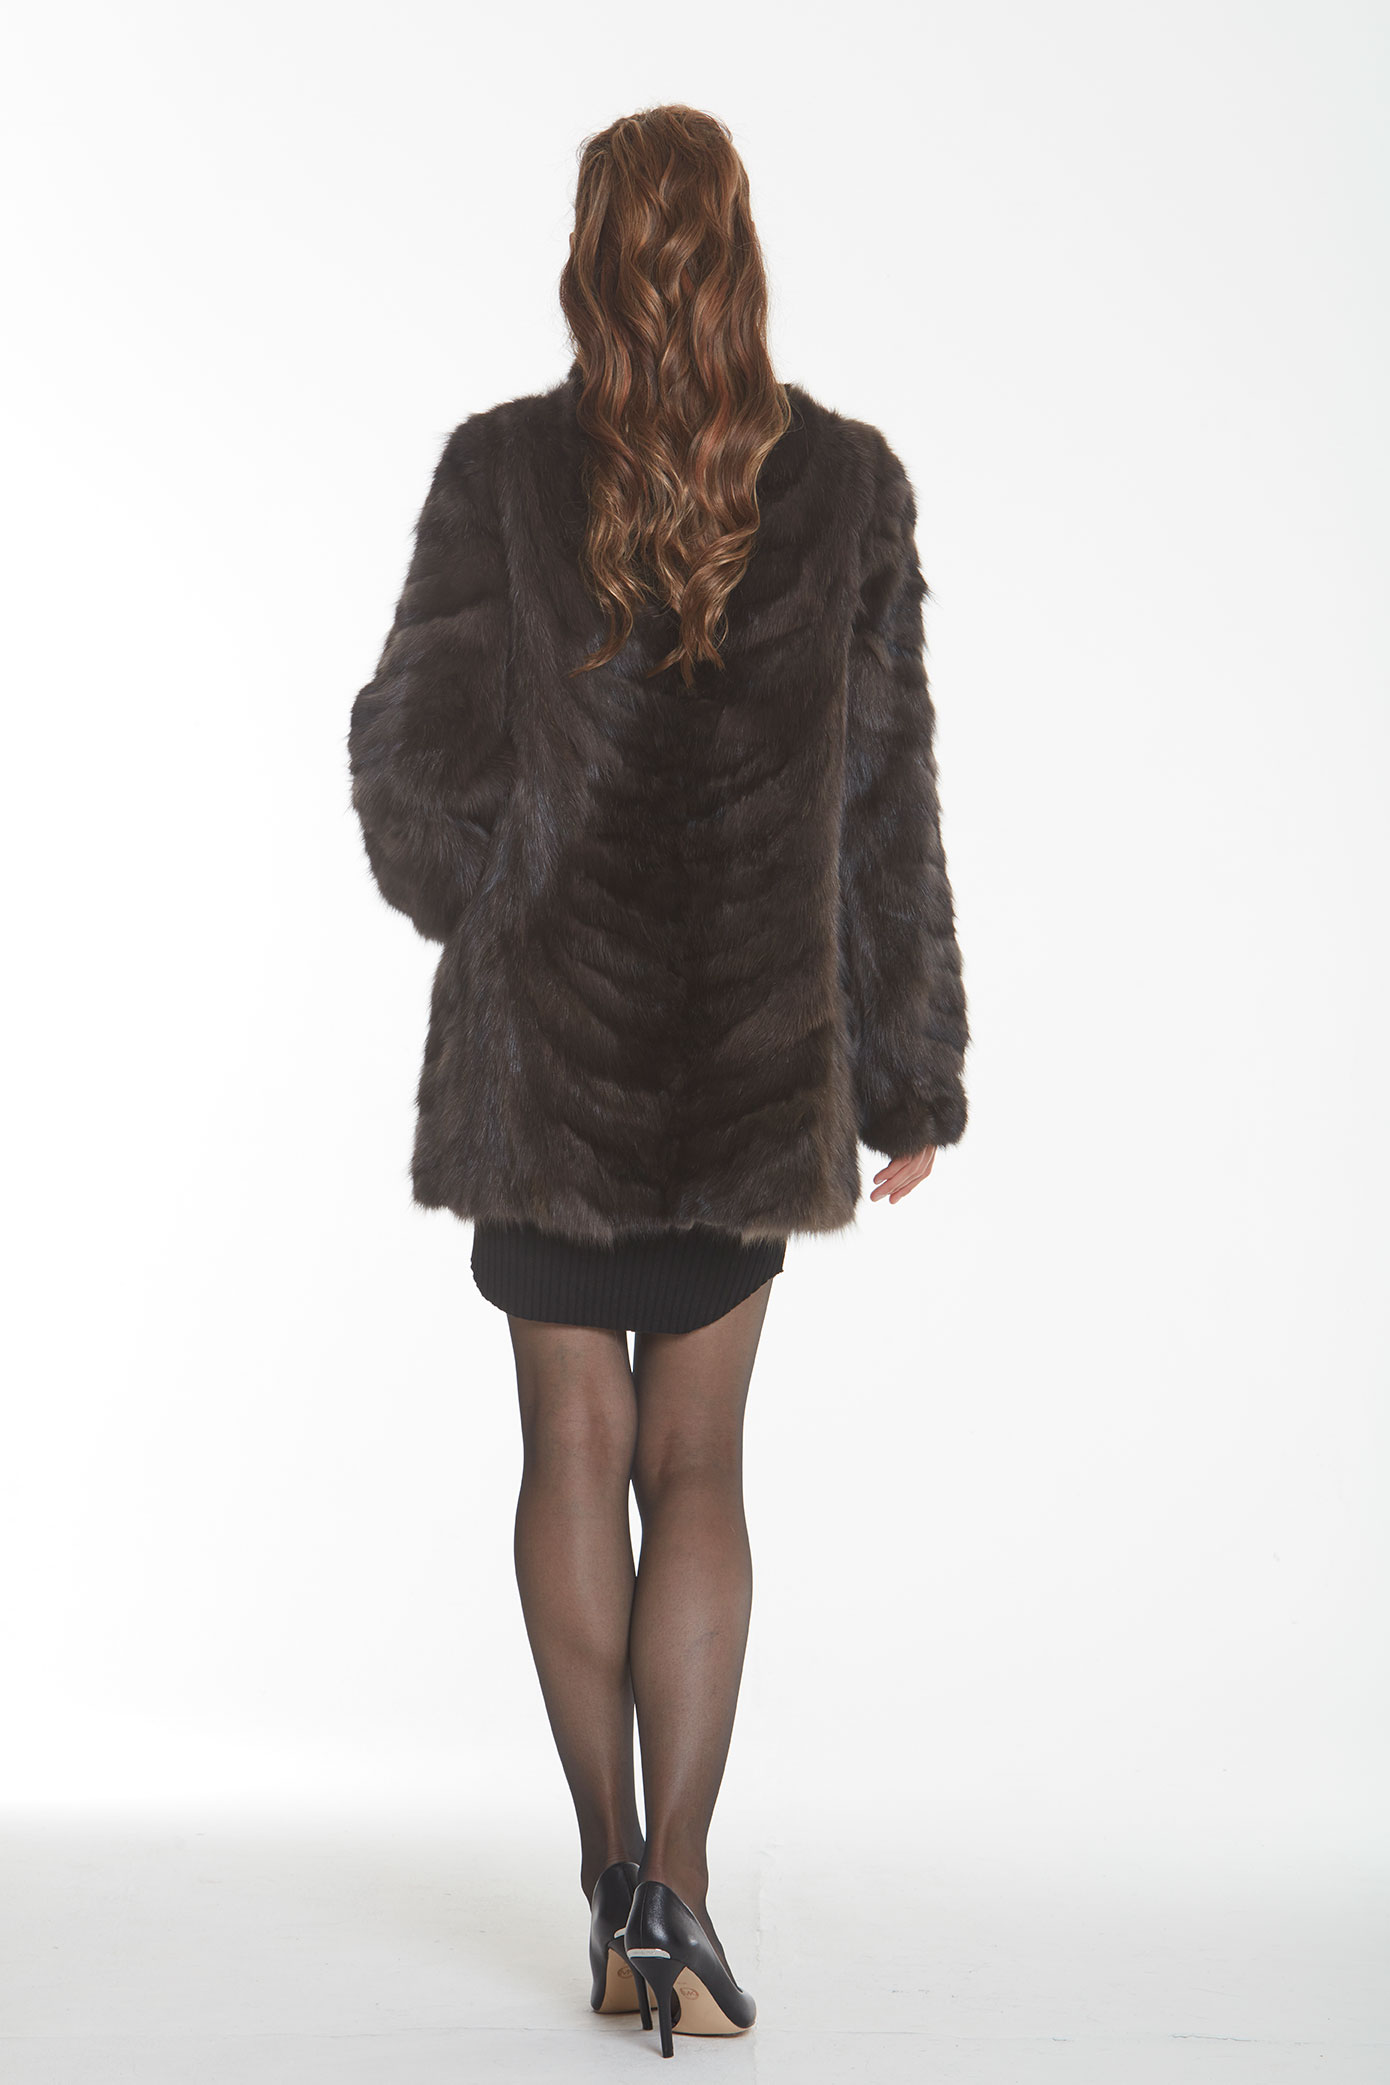 back-view-sable-jacket